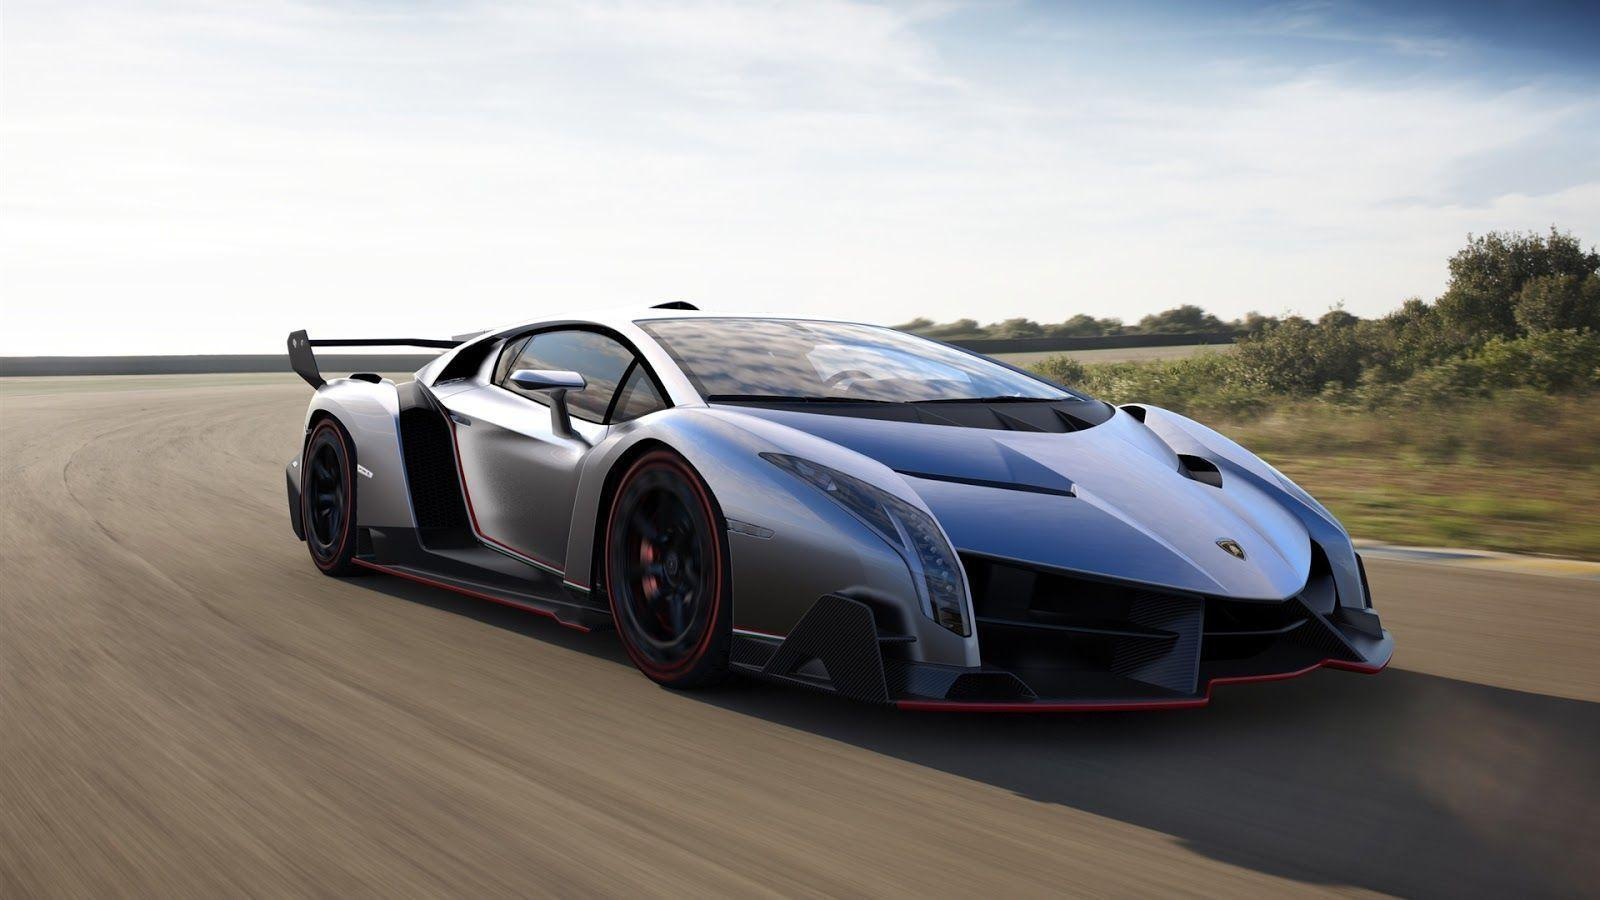 Supercars Hd Wallpapers Wallpaper Cave